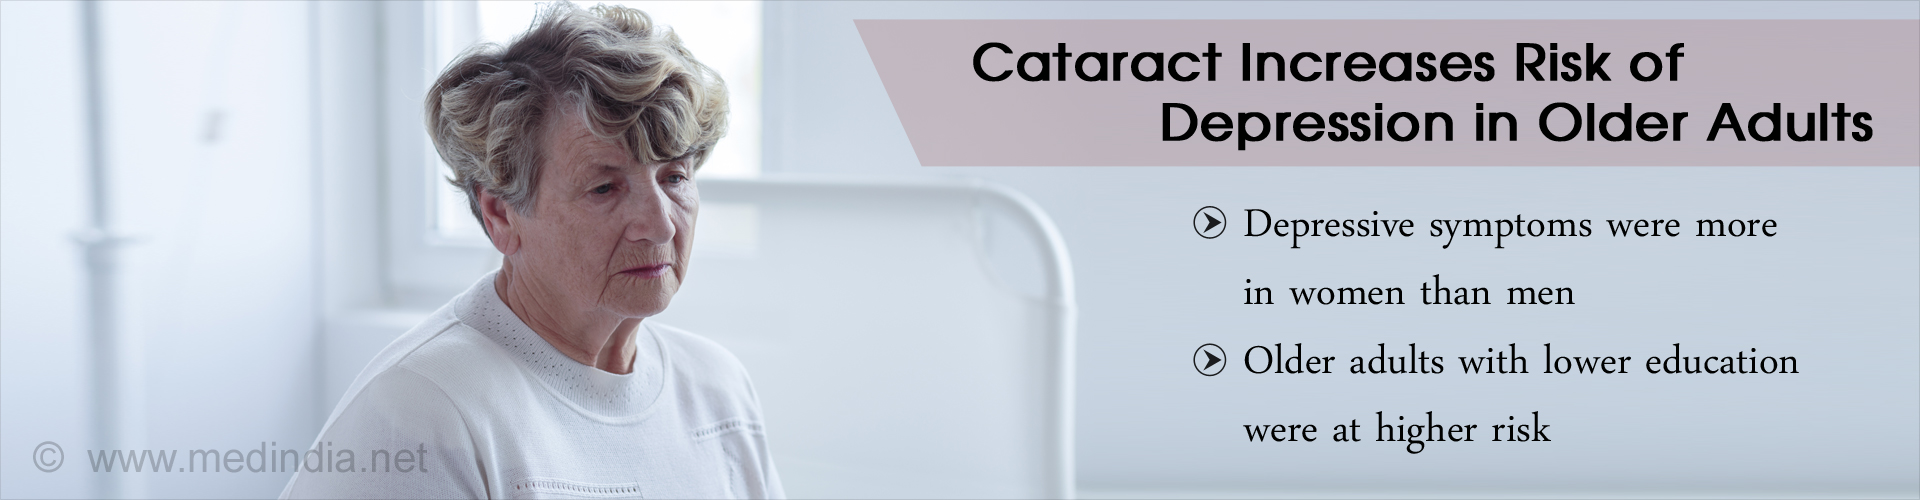 Cataract Increases Depression Risk in Older Adults